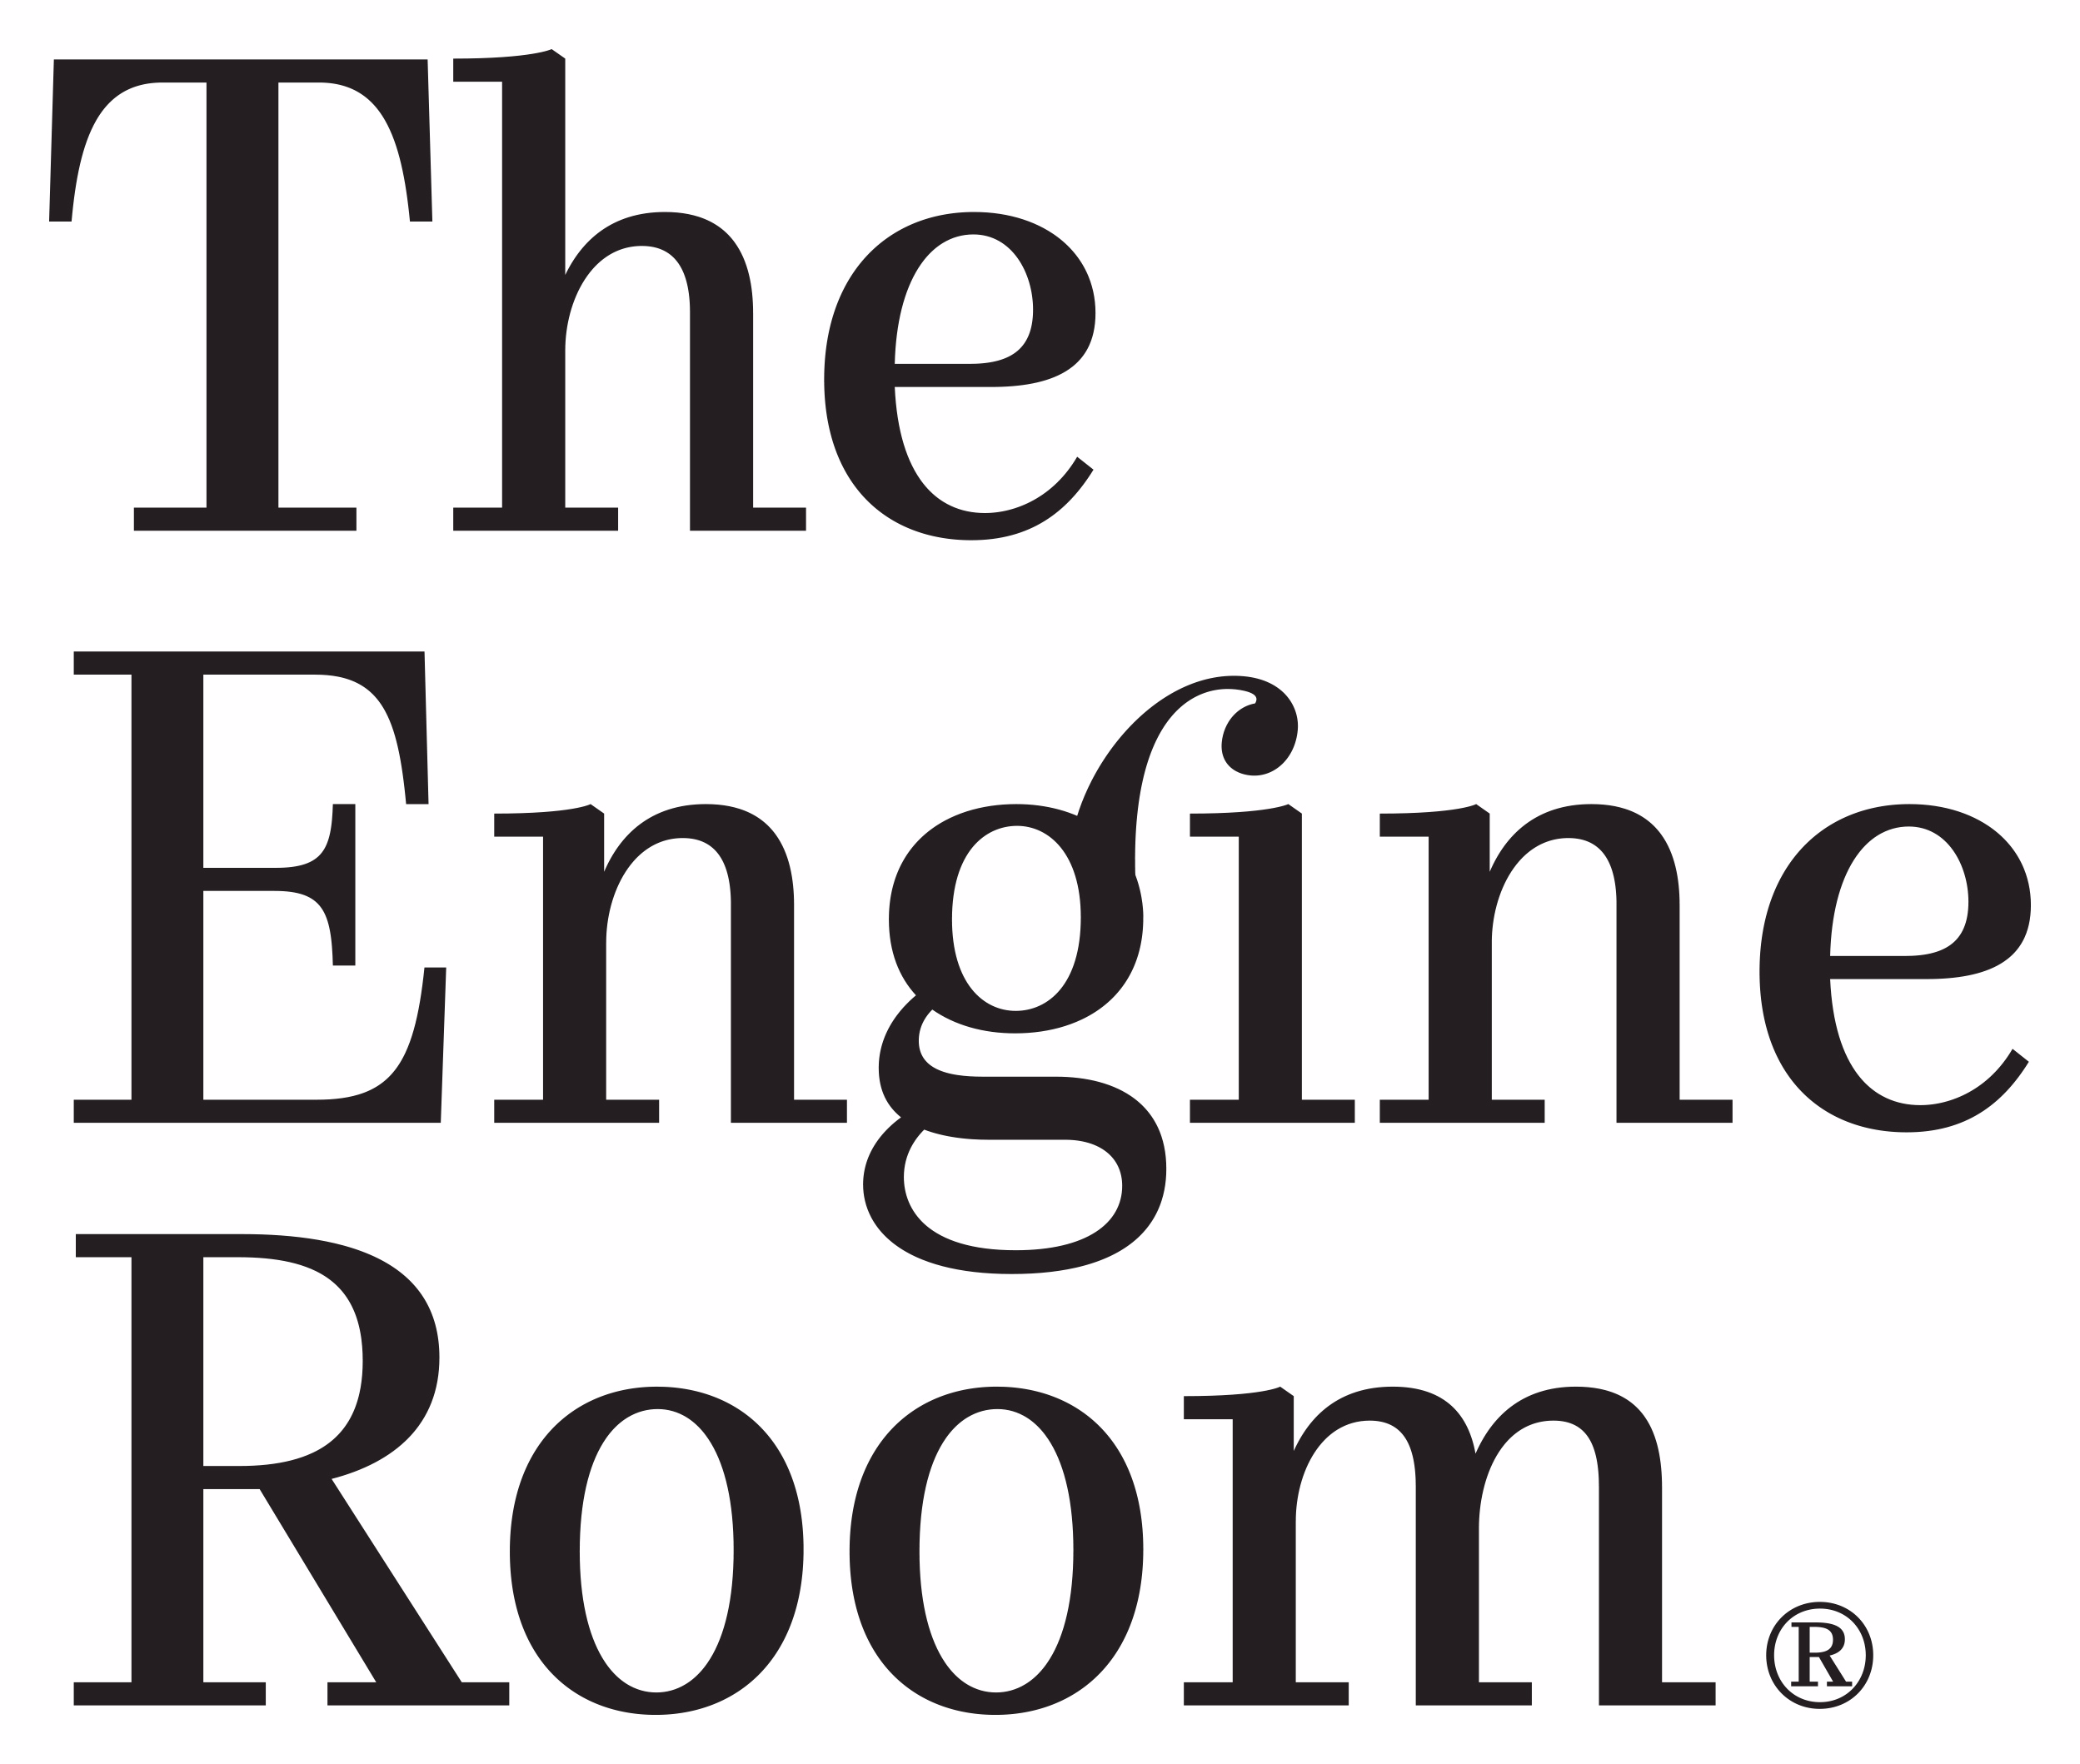 Engine Room Design